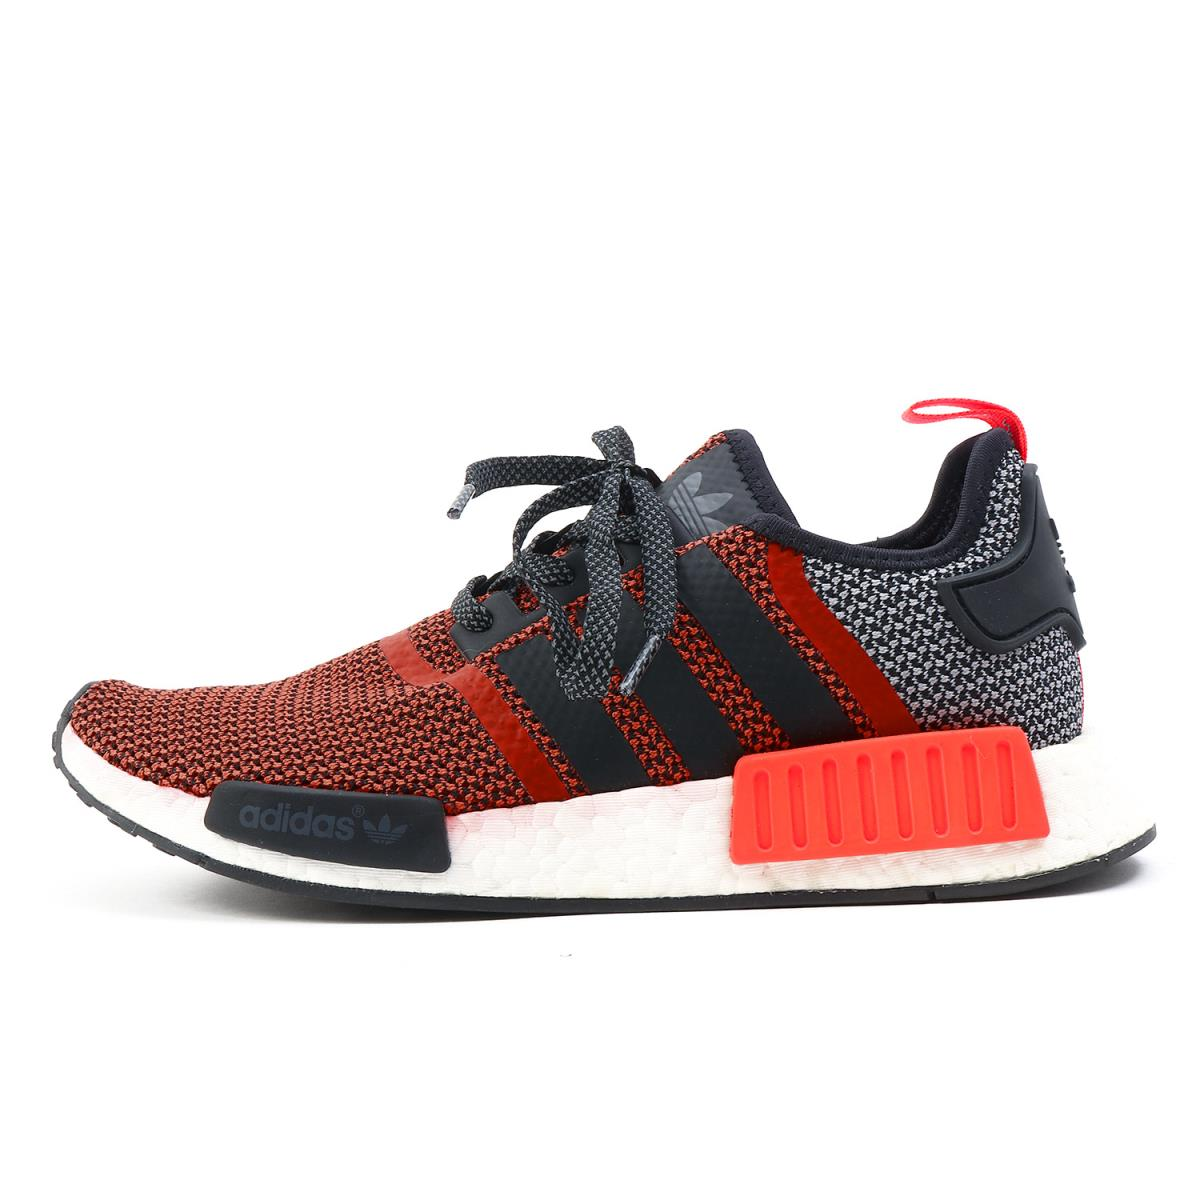 6cbc770f6c8d BEEGLE by Boo-Bee  adidas (Adidas) NMD RNR (S79158) ルスレッド X ...